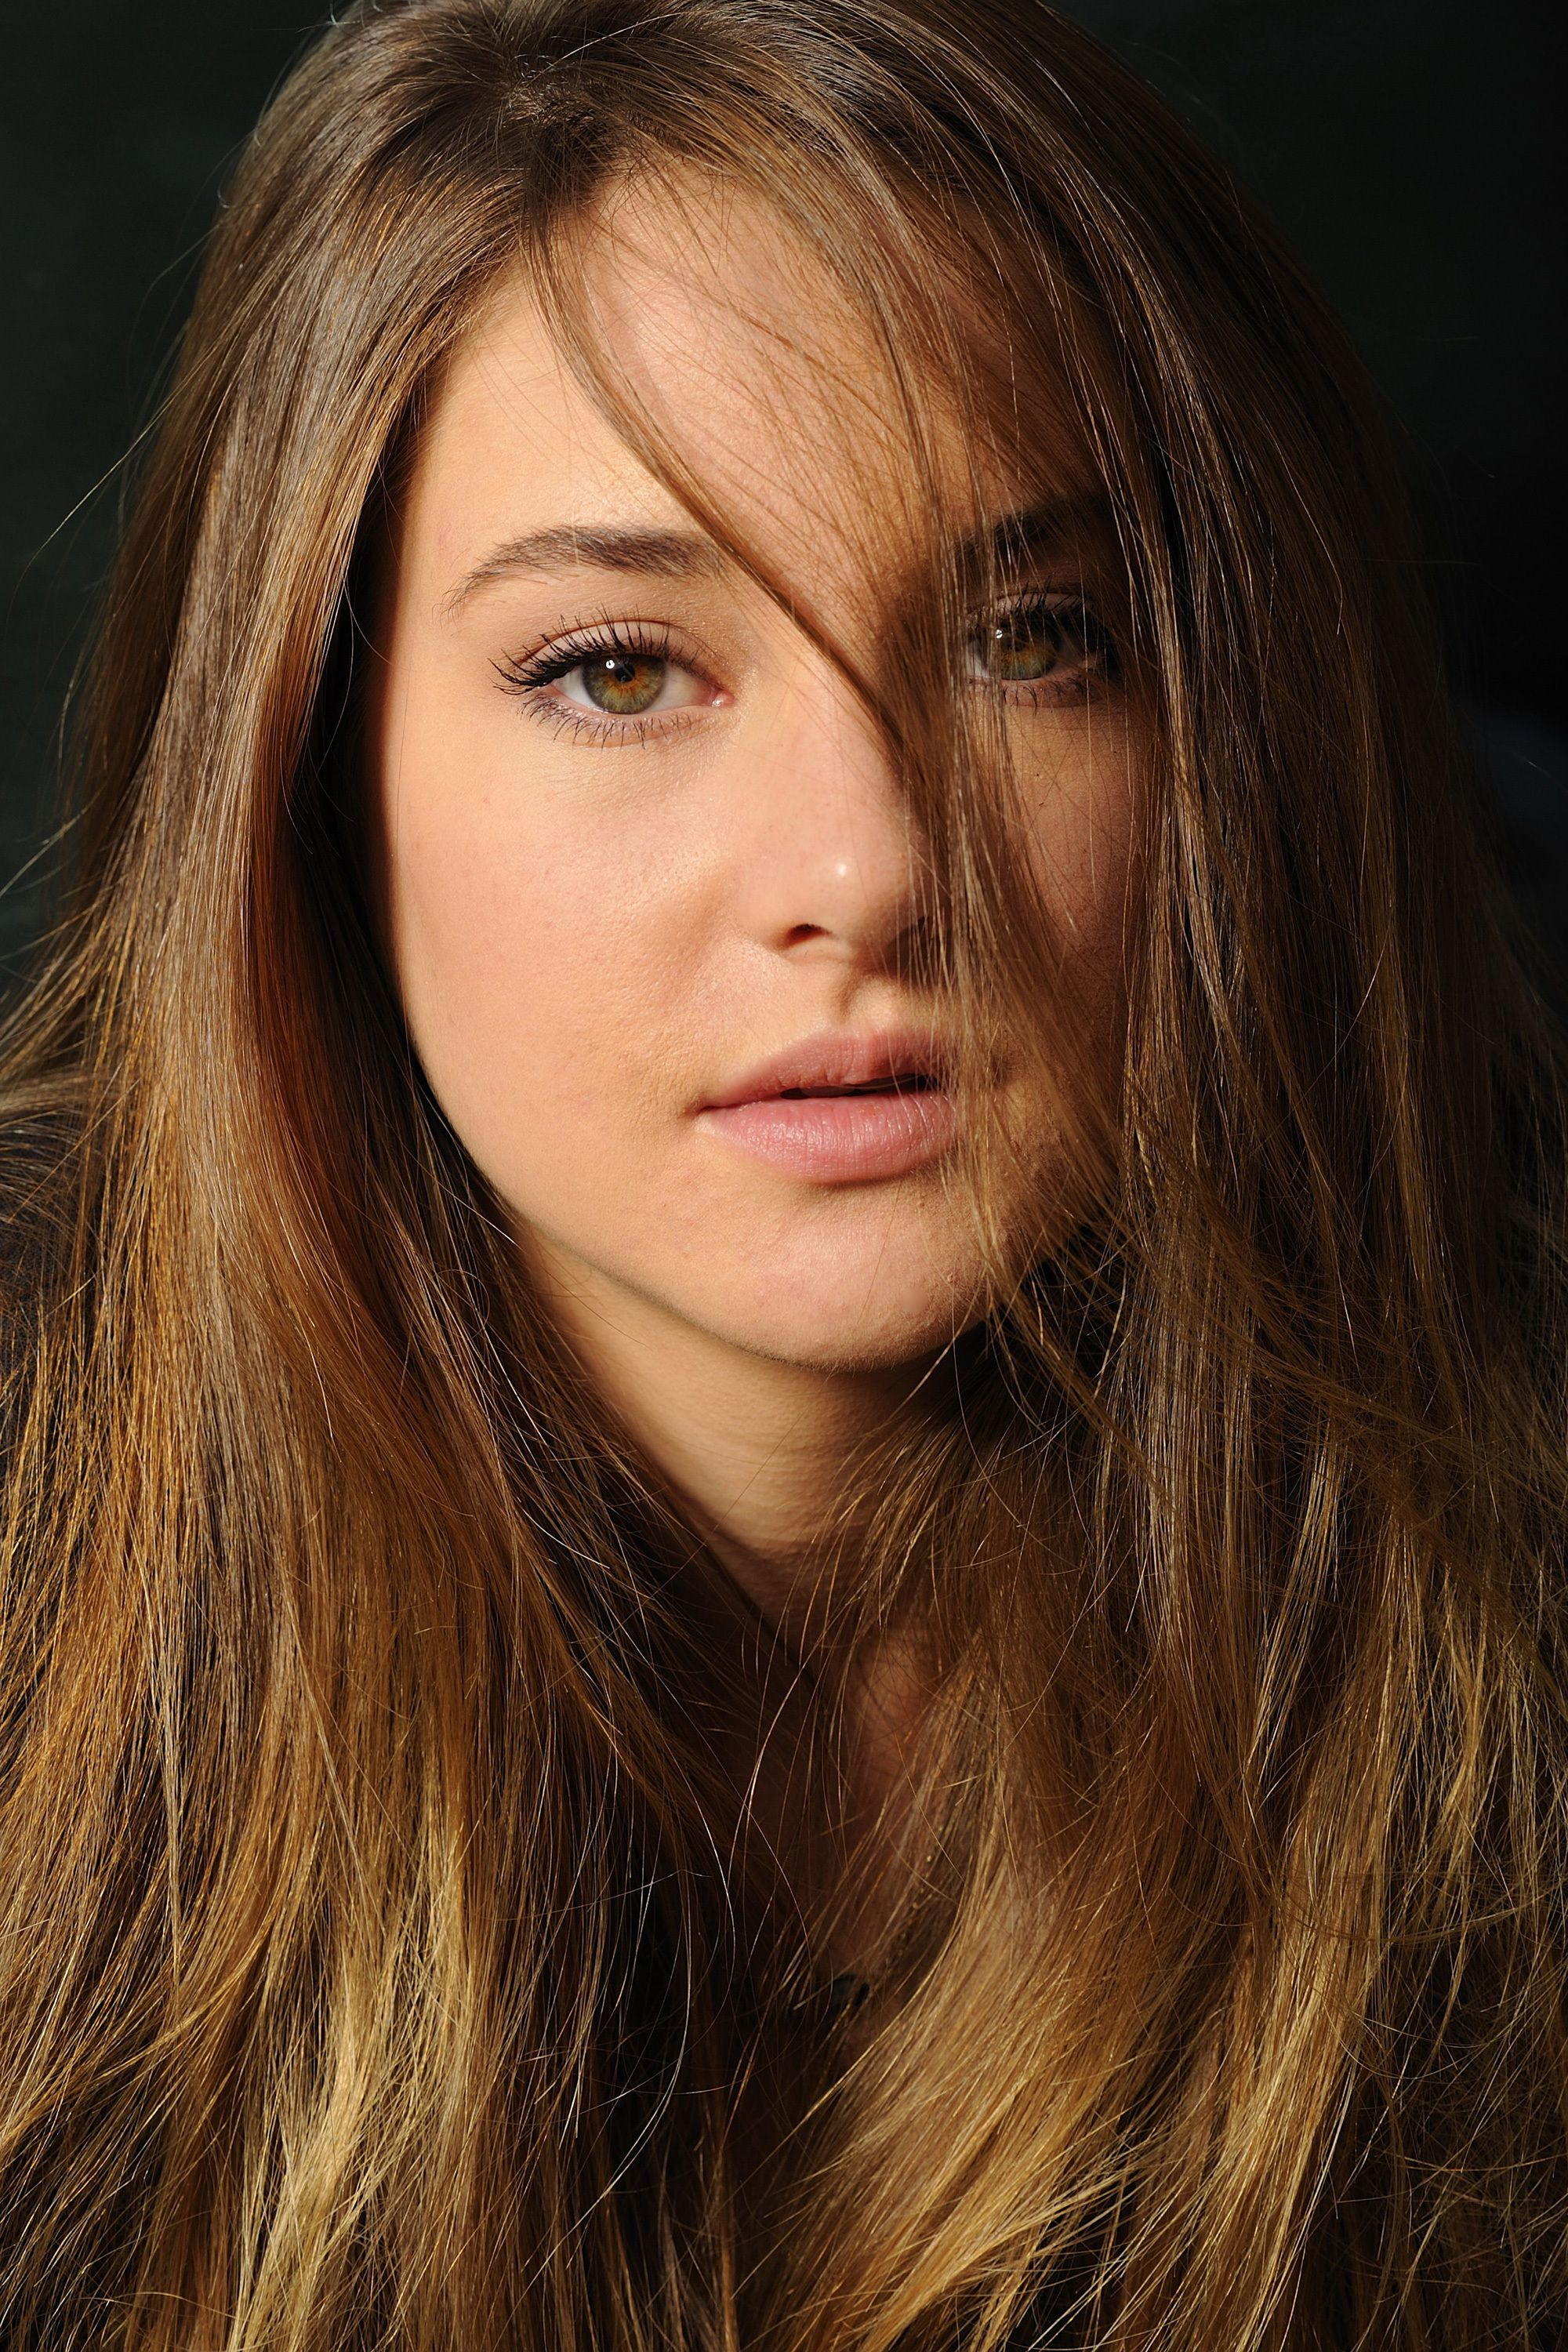 Shailene Woodley Biografia Hd Images 3 HD Wallpapers Eyebrows in 2000x3000